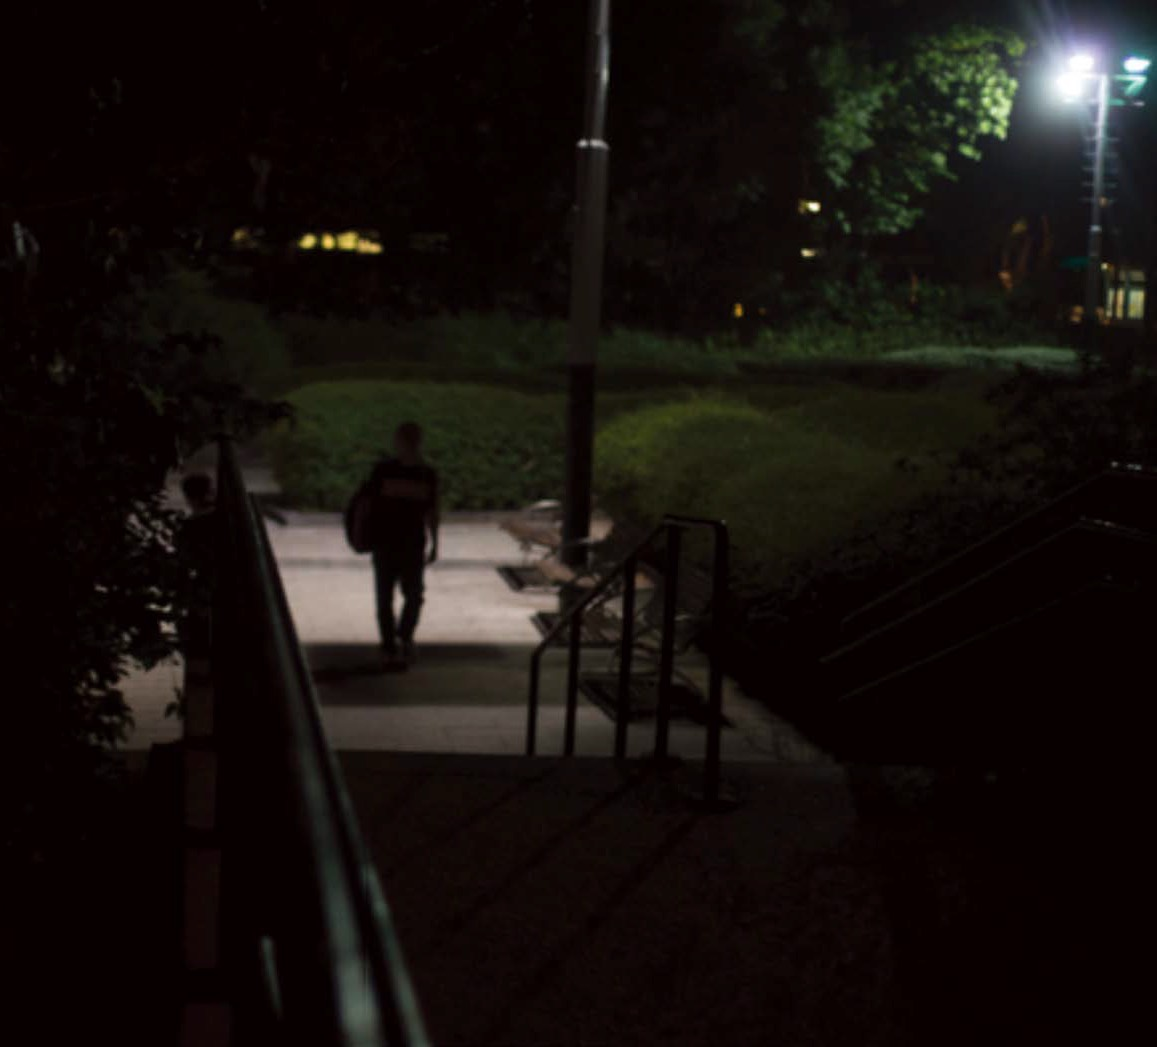 Walking among the light and the dark, Kowloon Park. Source: Liao Jiaming 2018.